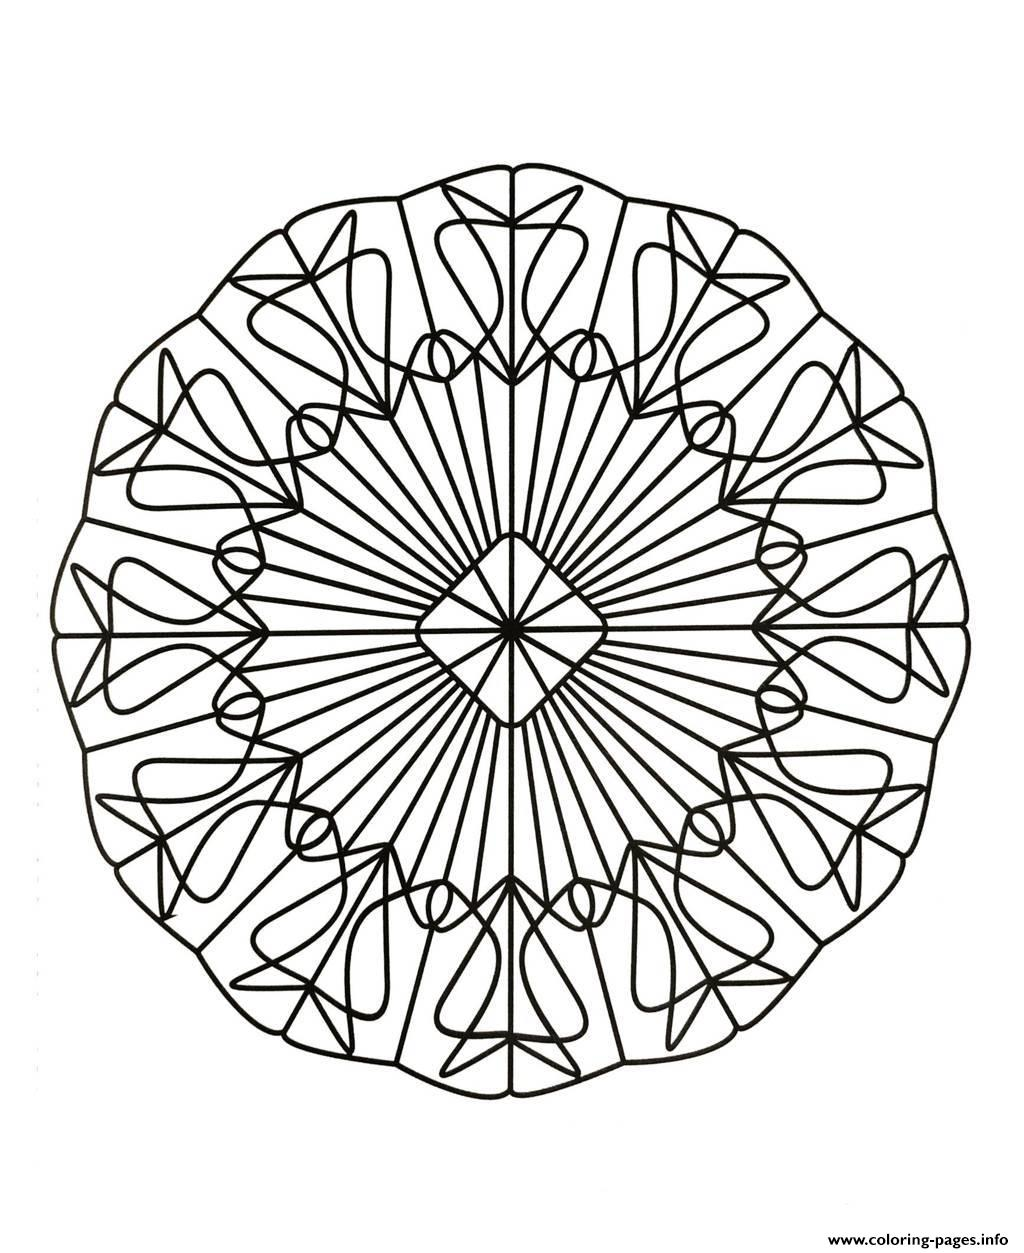 Mandalas To Download For Free 2  coloring pages